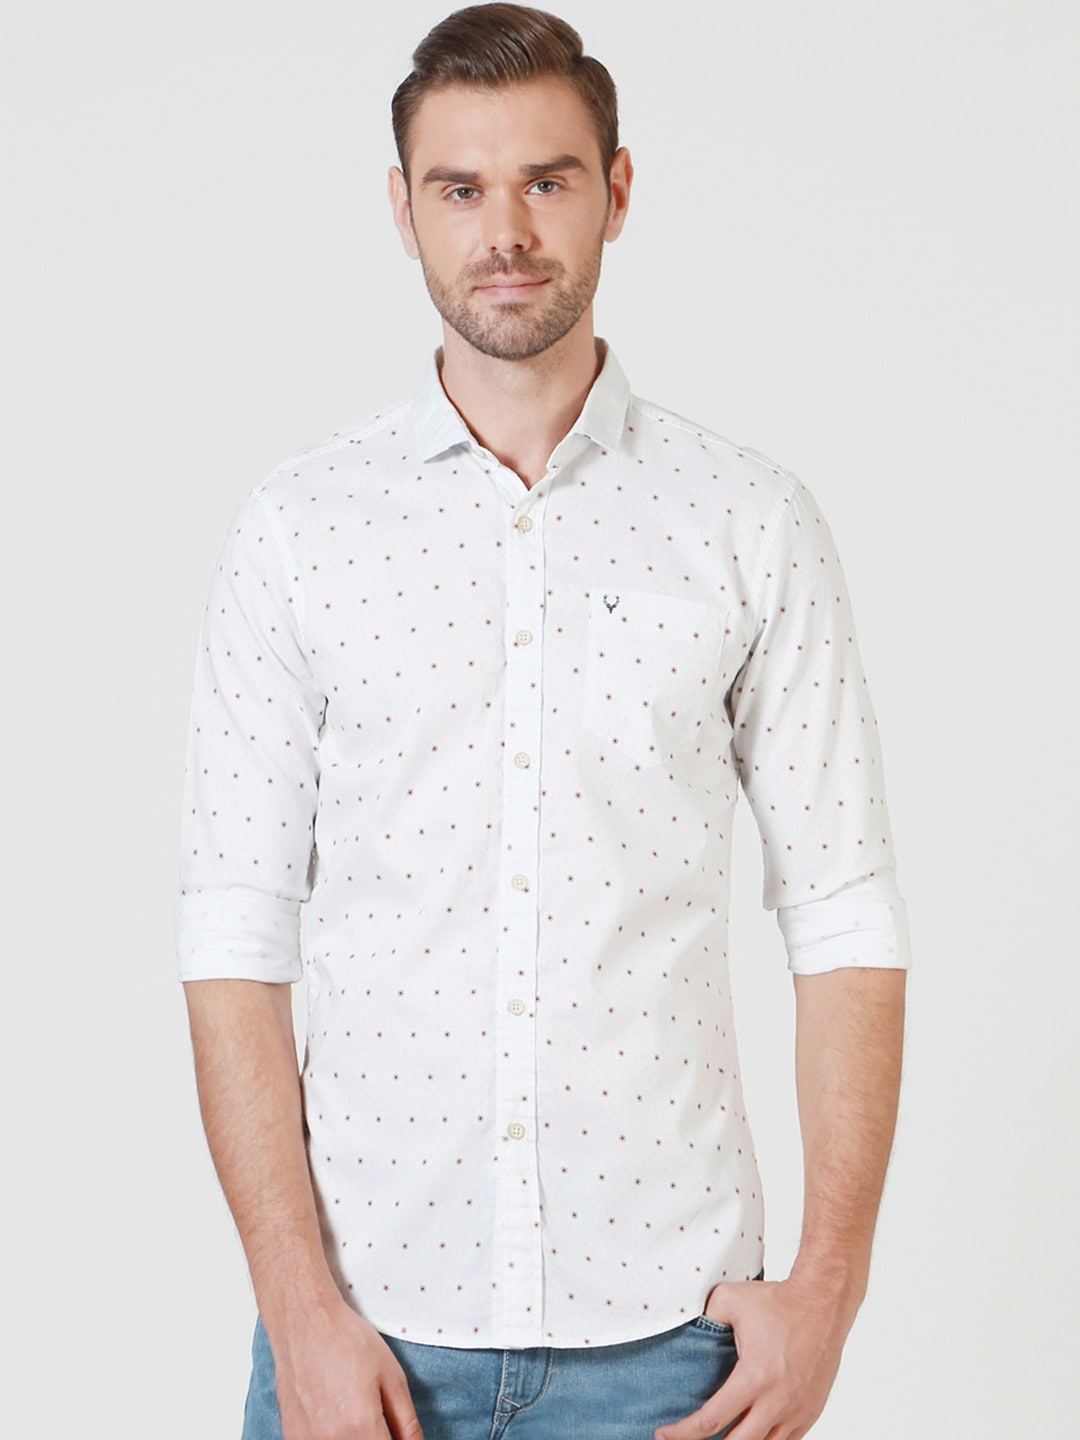 Solly Jeans Co. Men White Regular Fit Printed Casual Shirt image